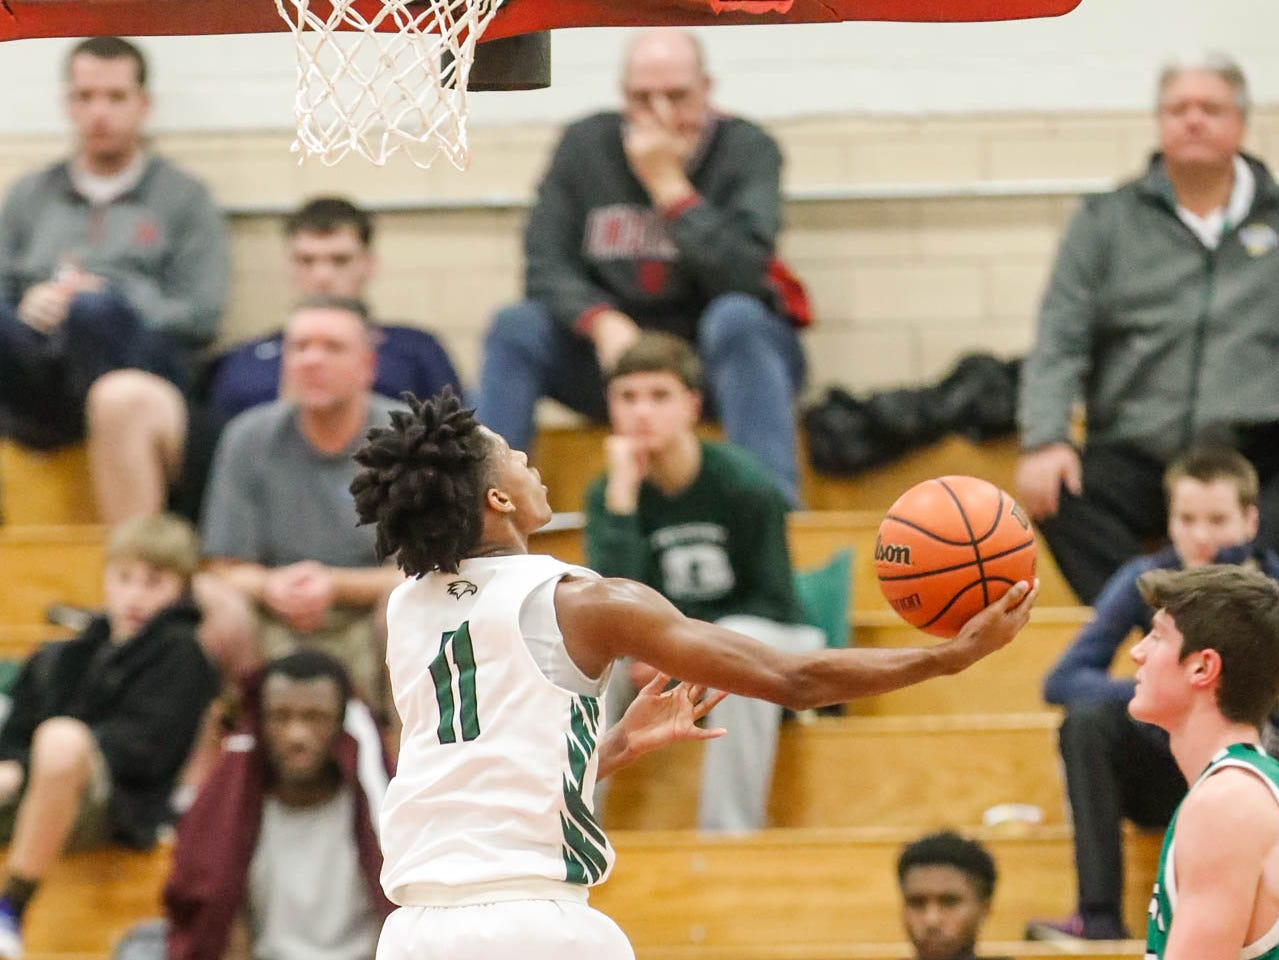 Zionsville Community High School's Isaiah Thompson (11) shoots a layup during a game between Zionsville Community High School, and Valparaiso High School, in the 4th Annual Manuel Extravaganza Showcase held at Emmerich Manuel High School in Indianapolis on Saturday, Dec. 22, 2018.